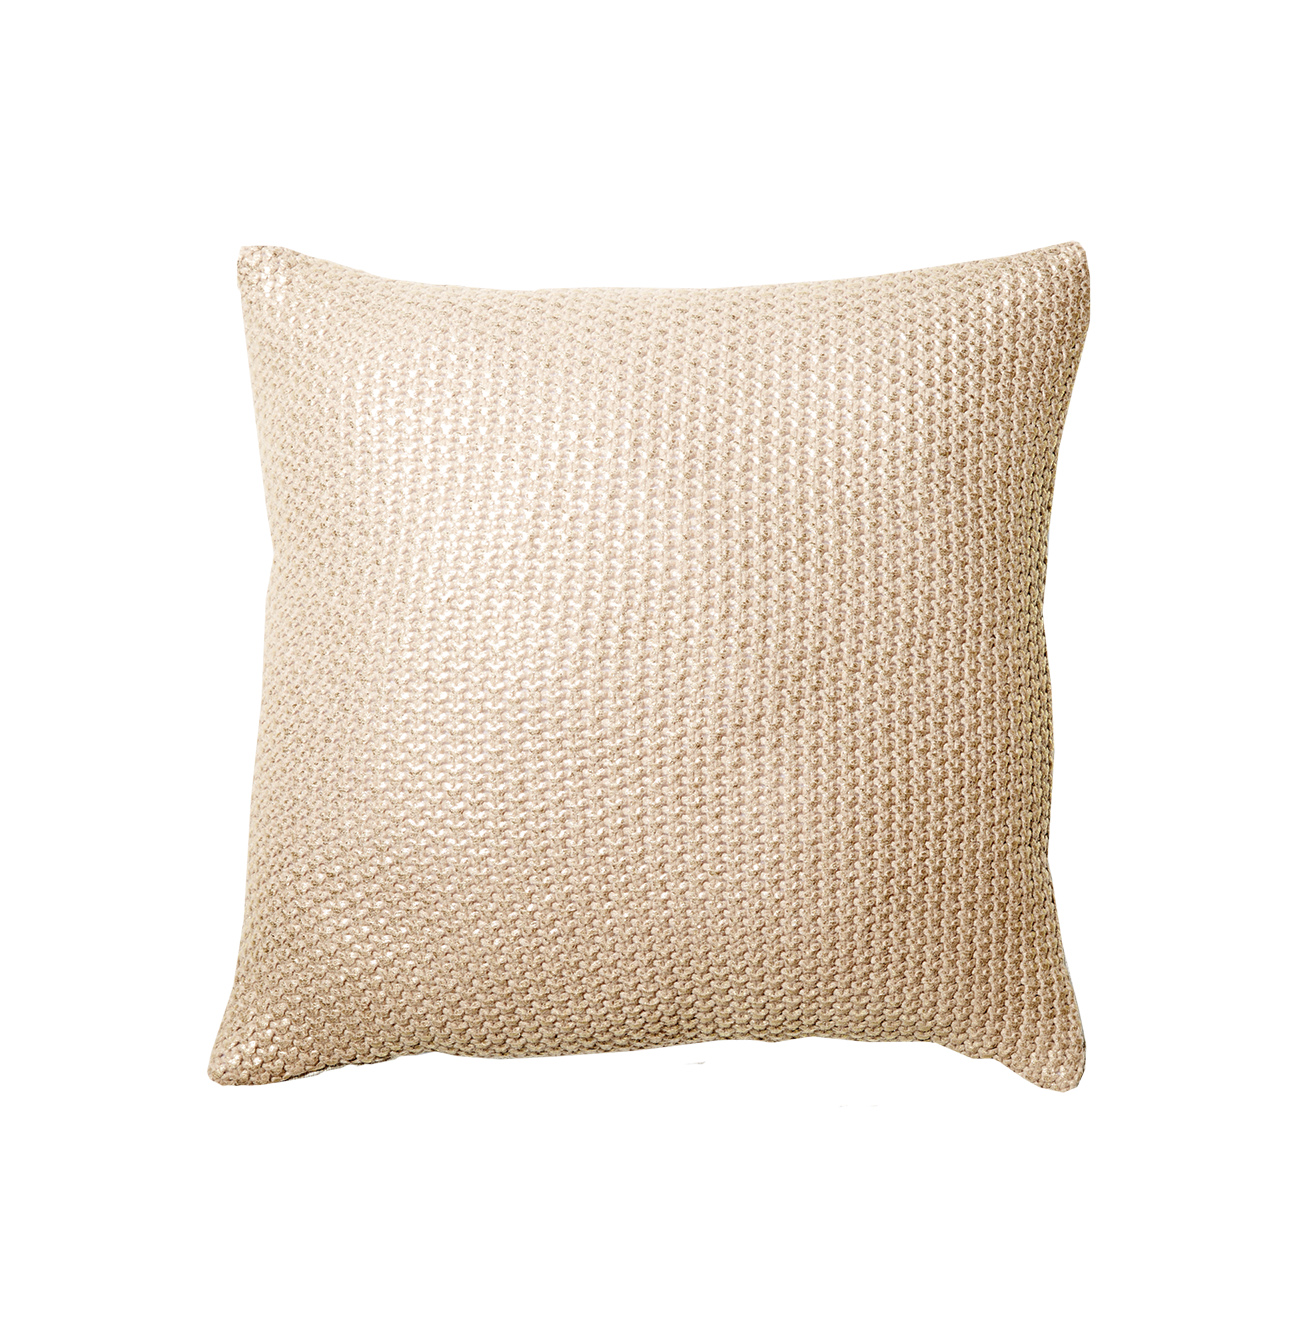 lowKmart metallic knitted cushion - RRP $12.jpg